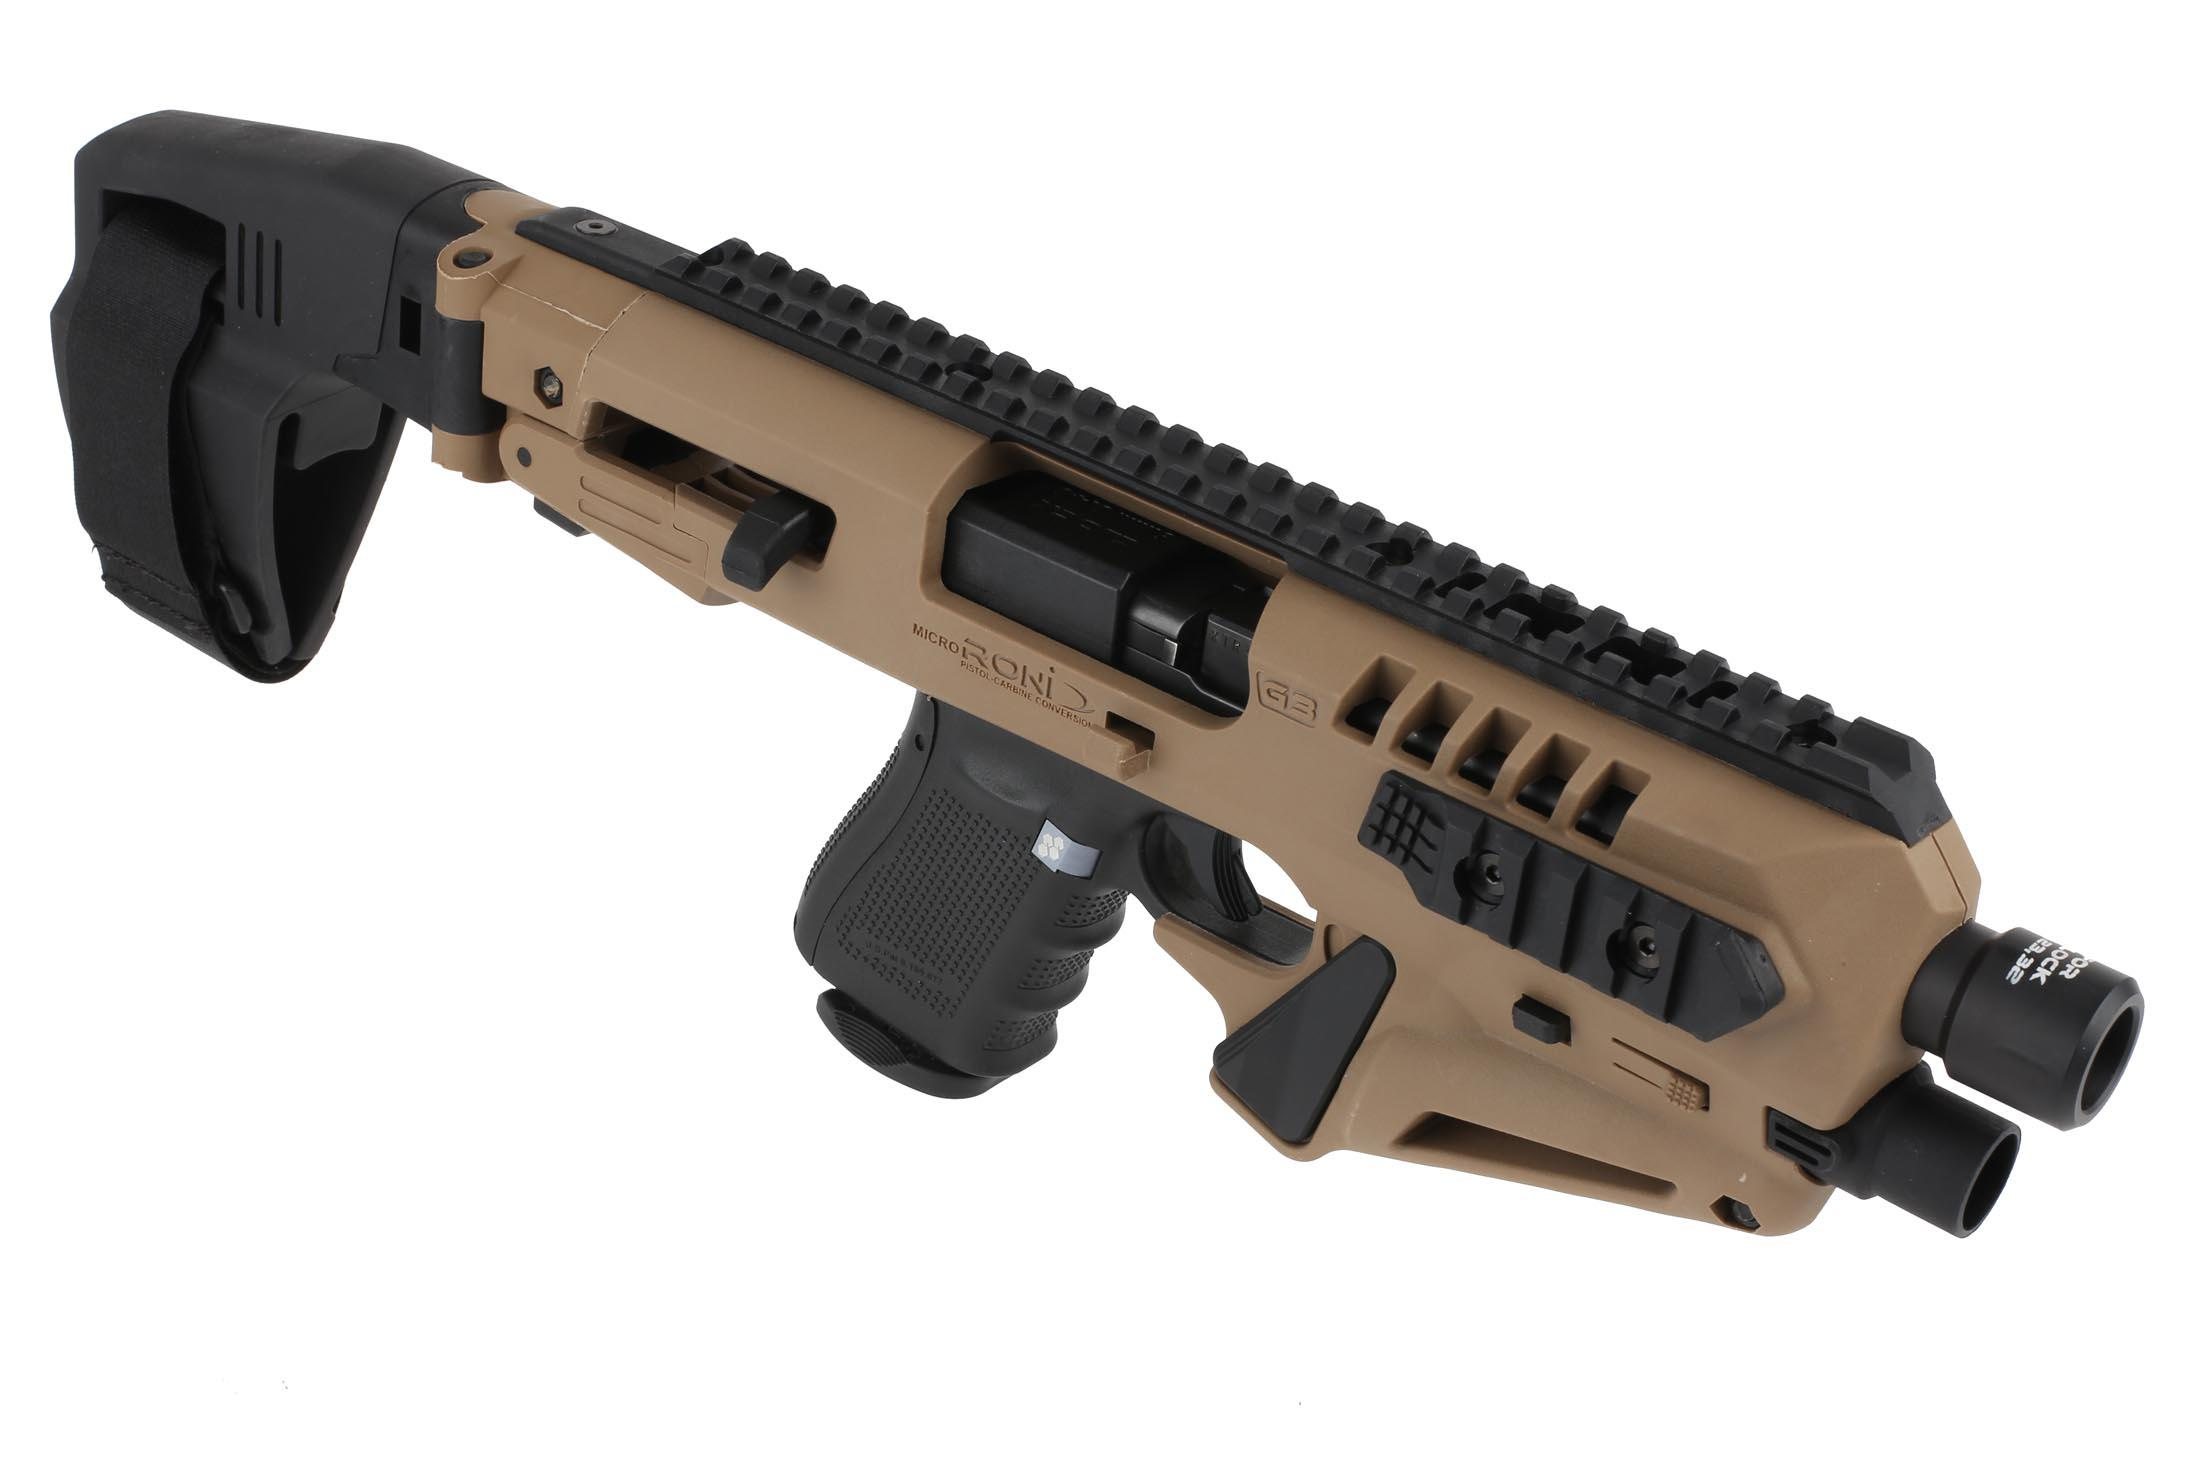 CAA Micro RONI 19 with Stabilizer - for Glock 19,23,32 - Flat Dark Earth